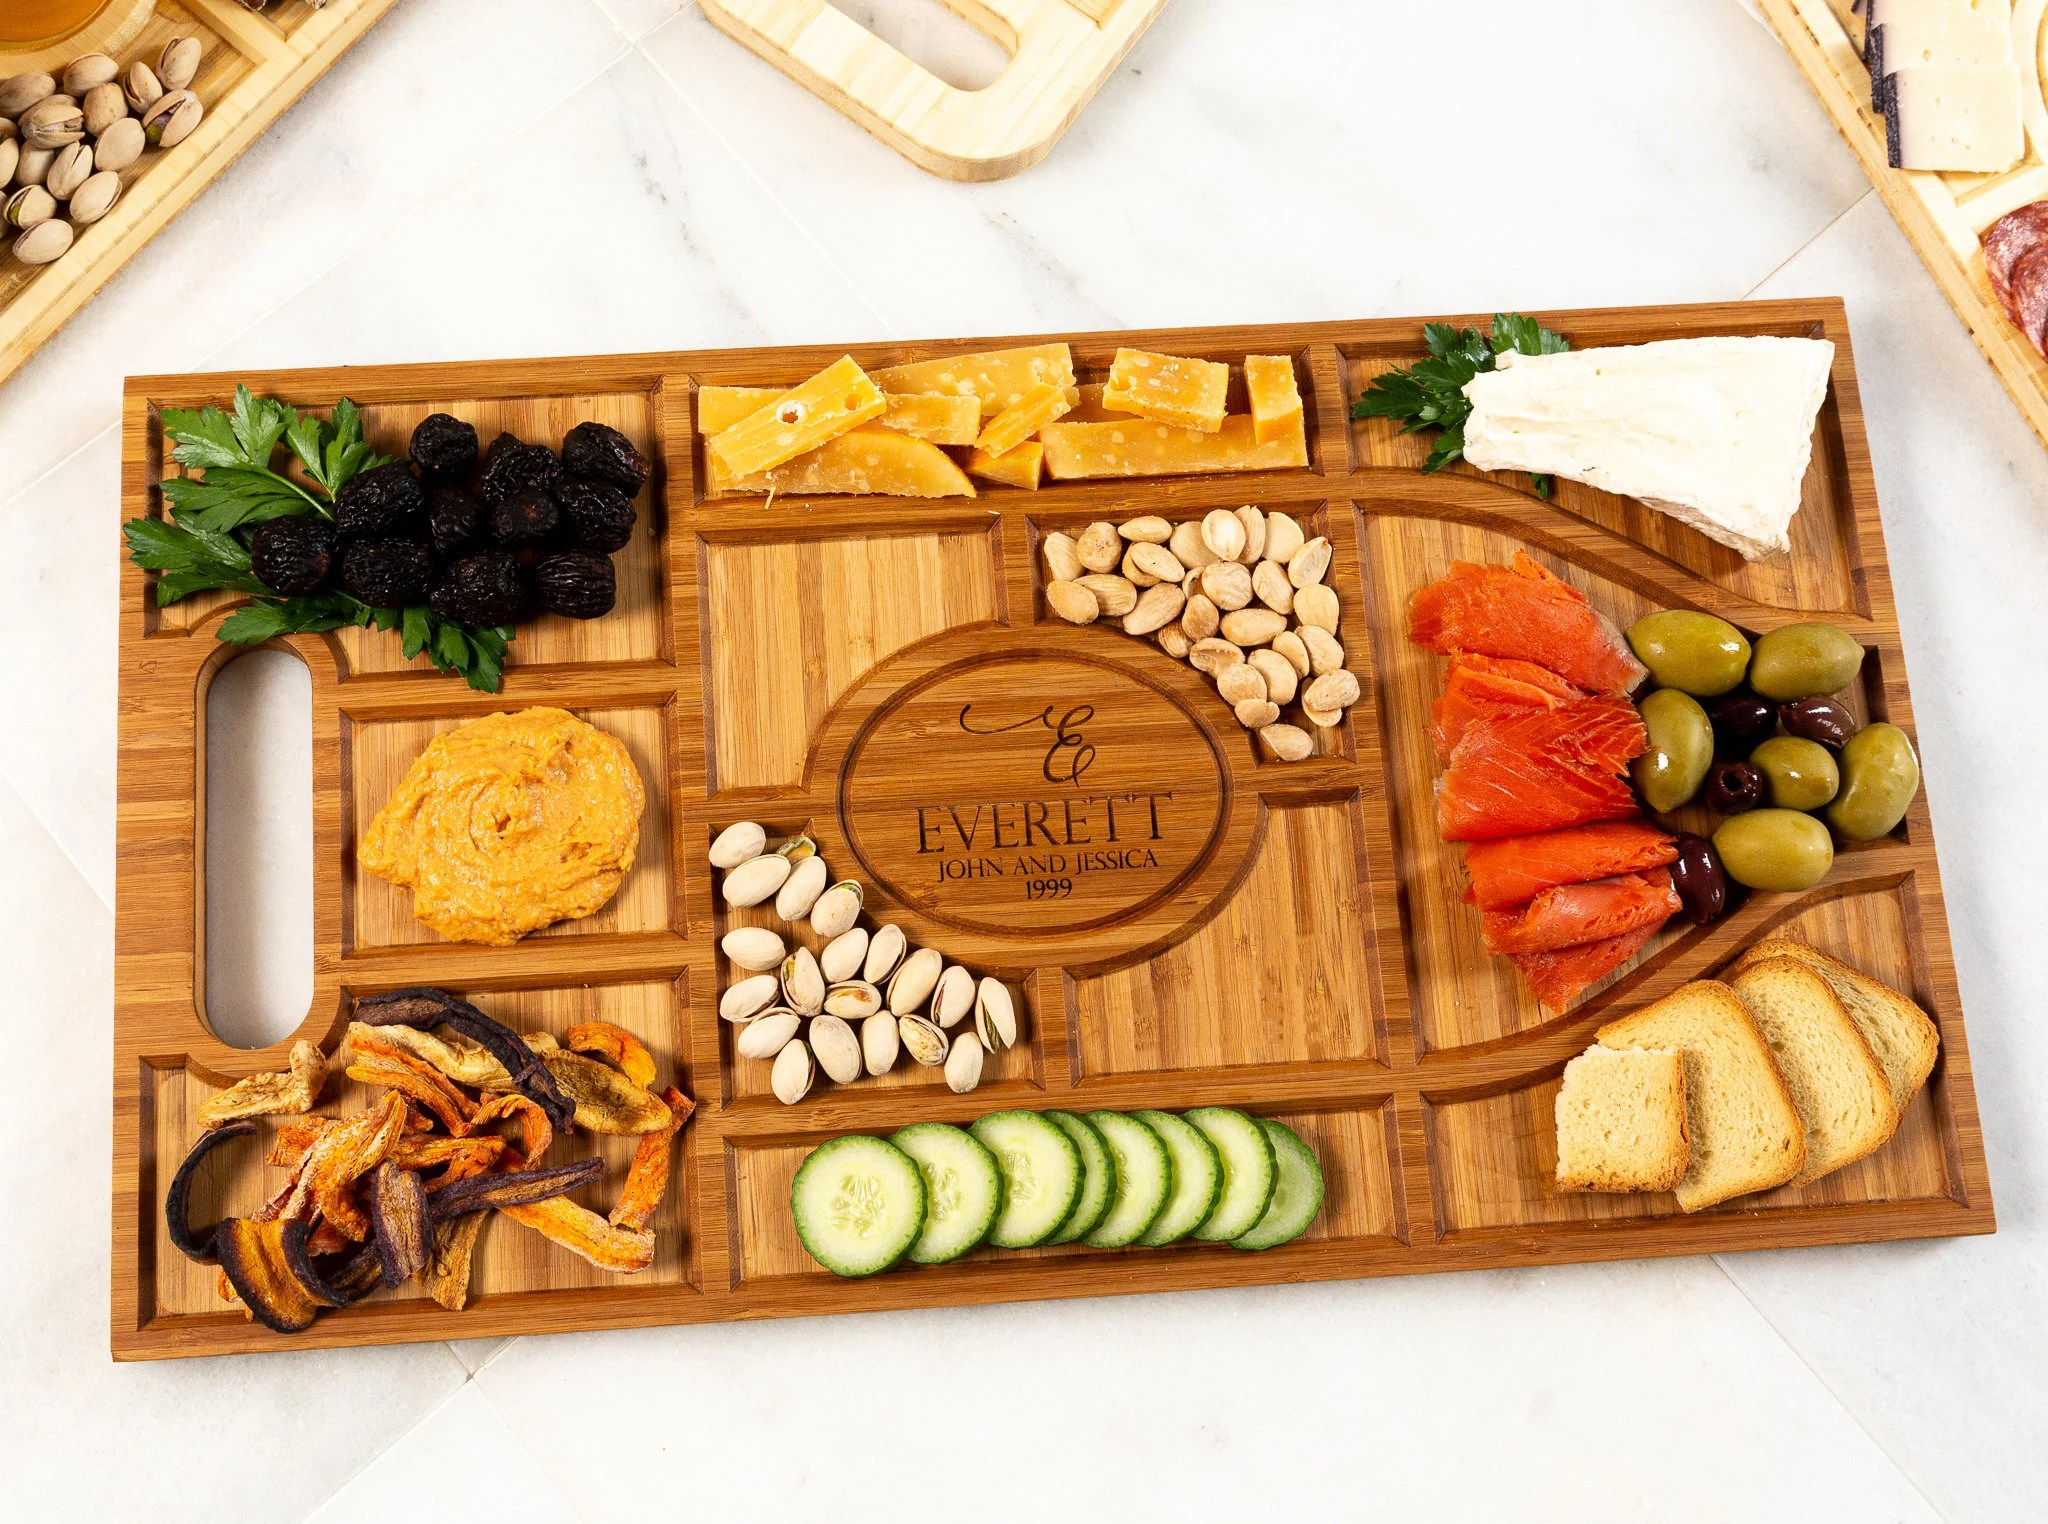 Personalized Charcuterie Planks and Beer Flights  4 Styles image 5